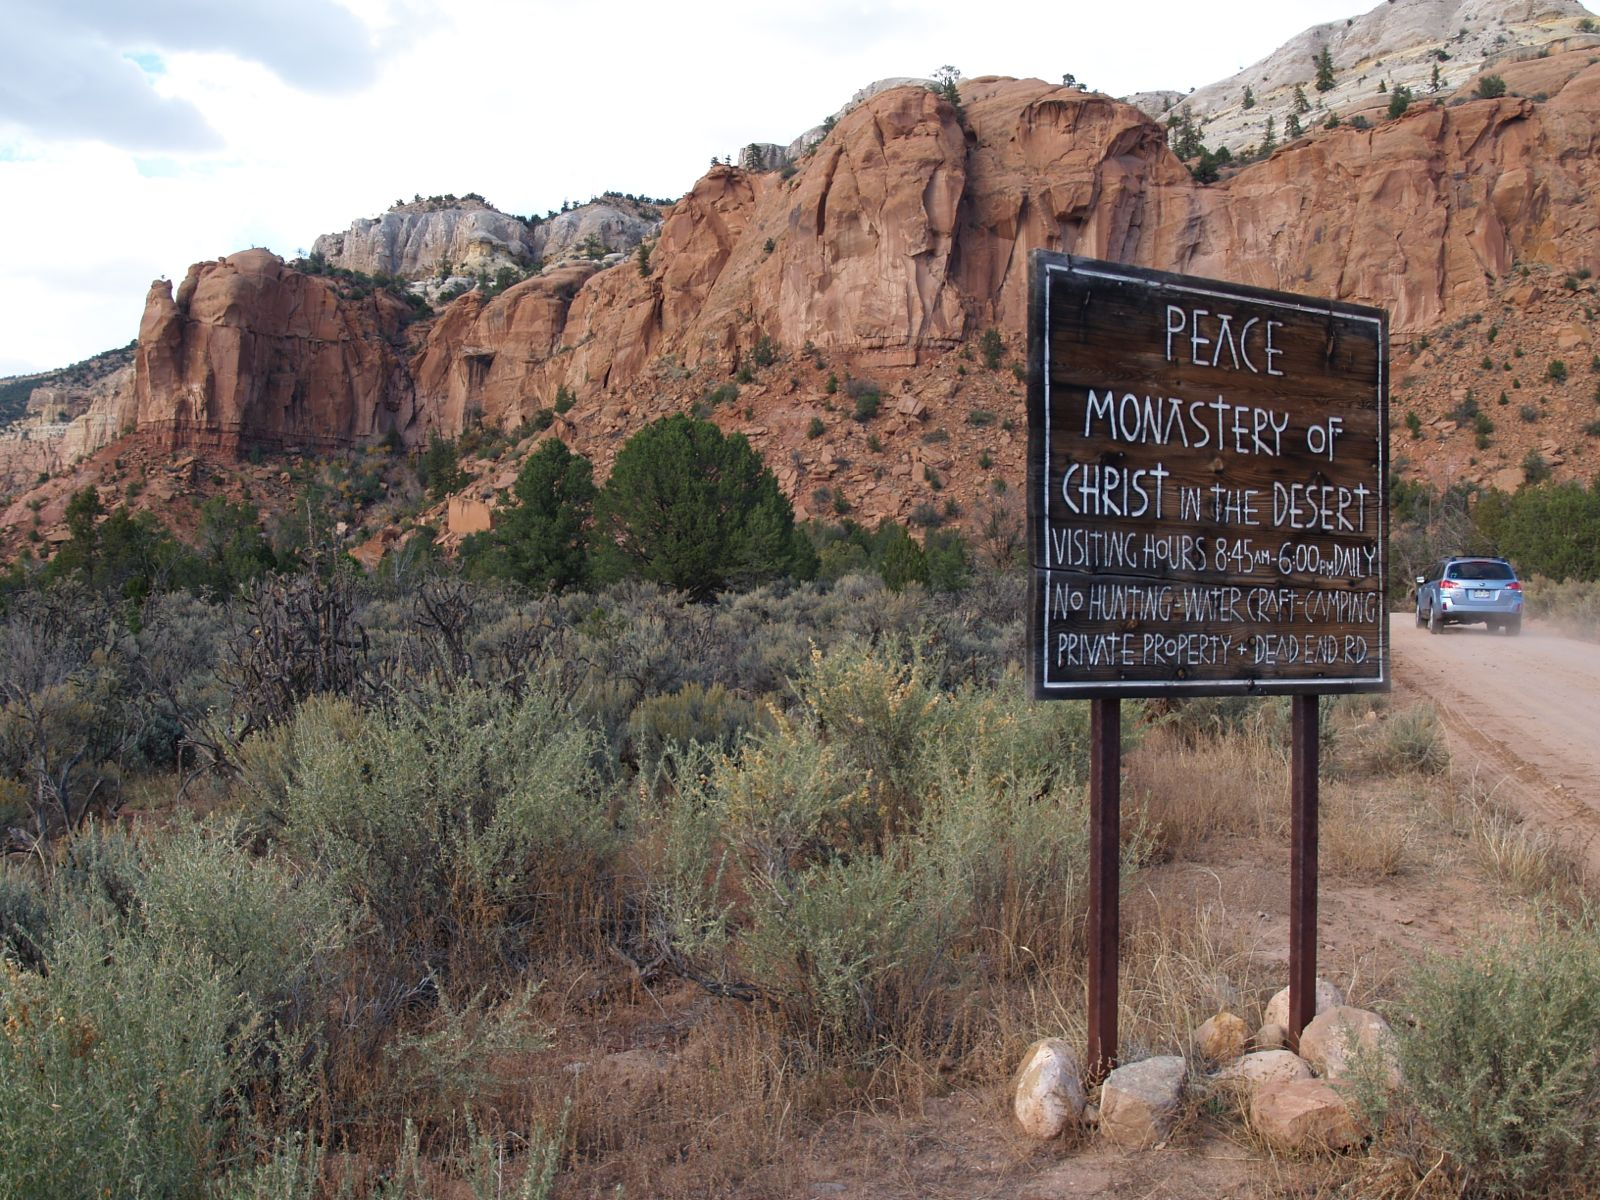 The monastery is located at the end of a glorious 13 mile drive through the Chama River Canyon.